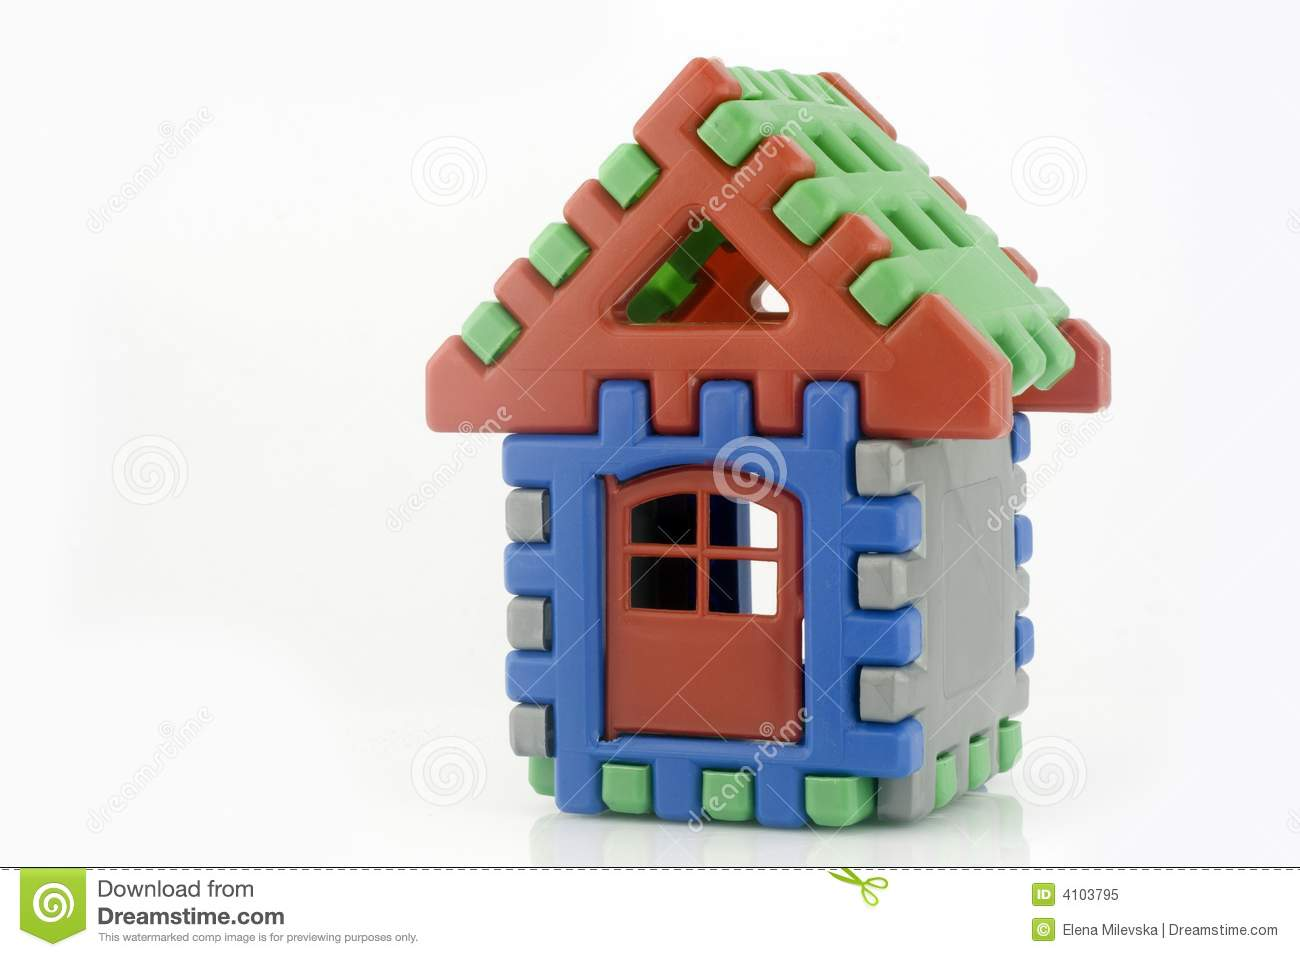 House toy with door  sc 1 st  Dreamstime.com & House toy with door stock image. Image of play miniature - 4103795